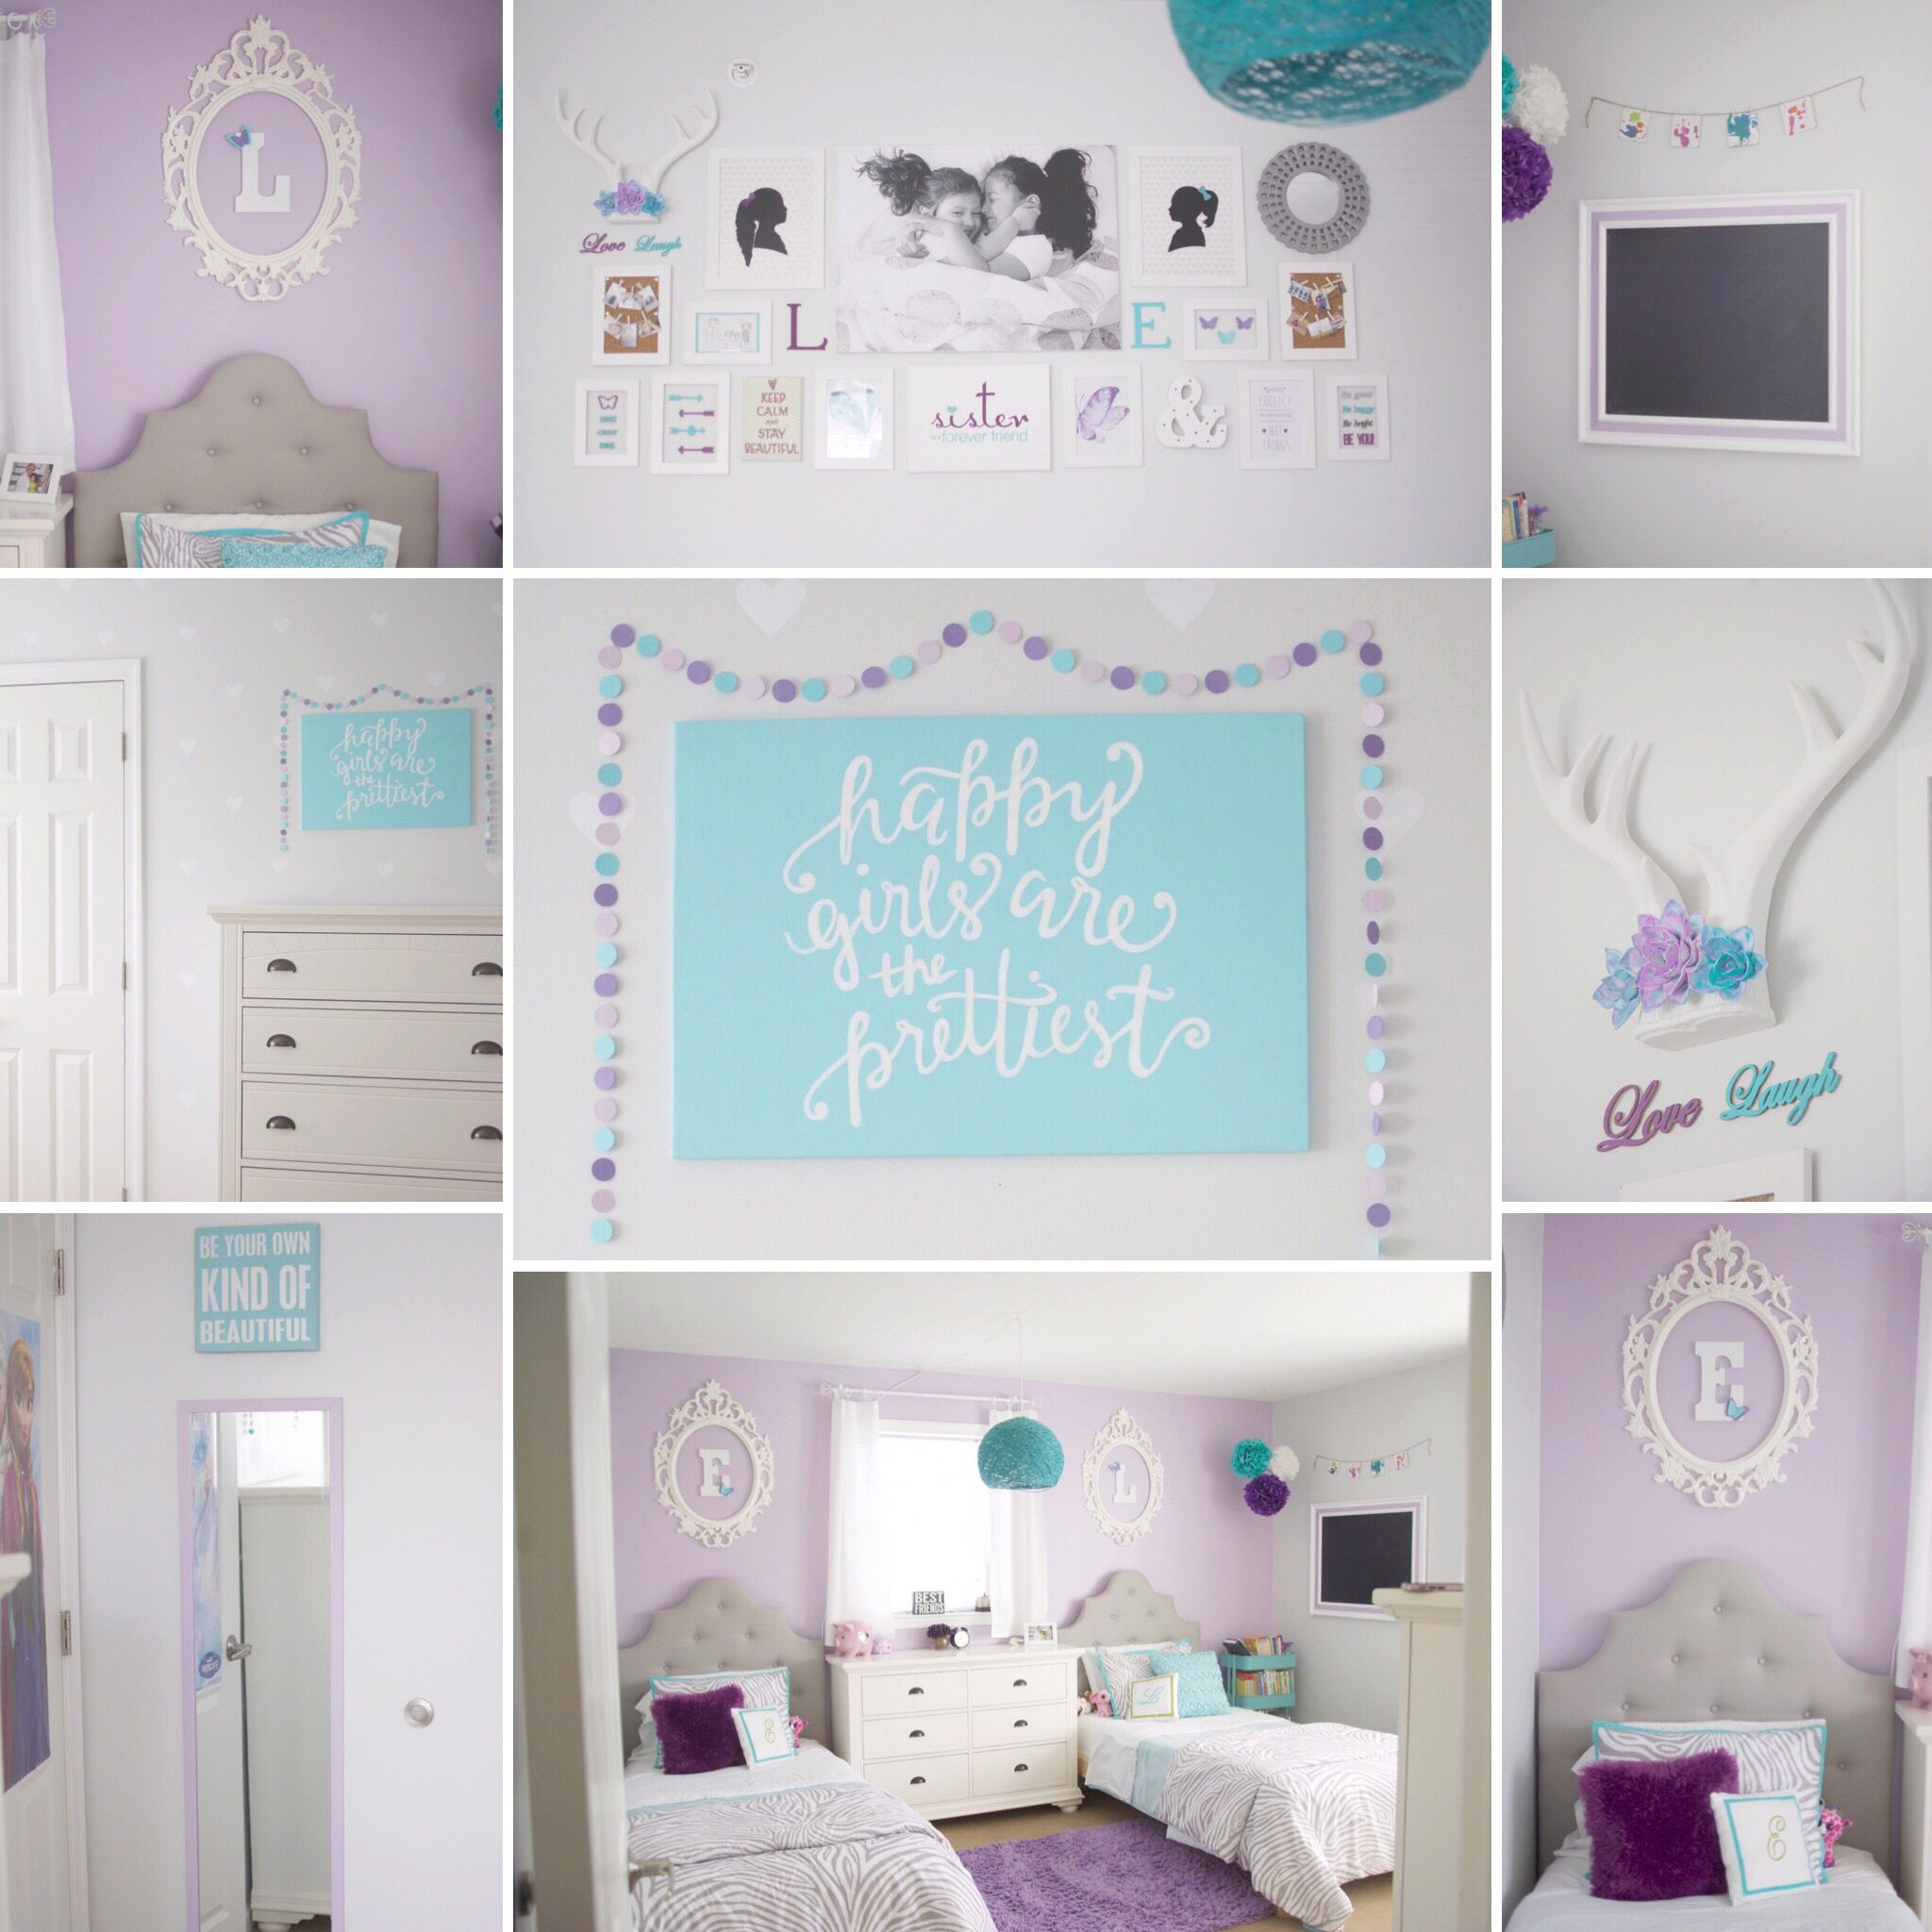 Turquoise and purple bedroom - Girls Shared Bedroom Purple And Teal Ikea Ung Frames Chalkboard Redo Target